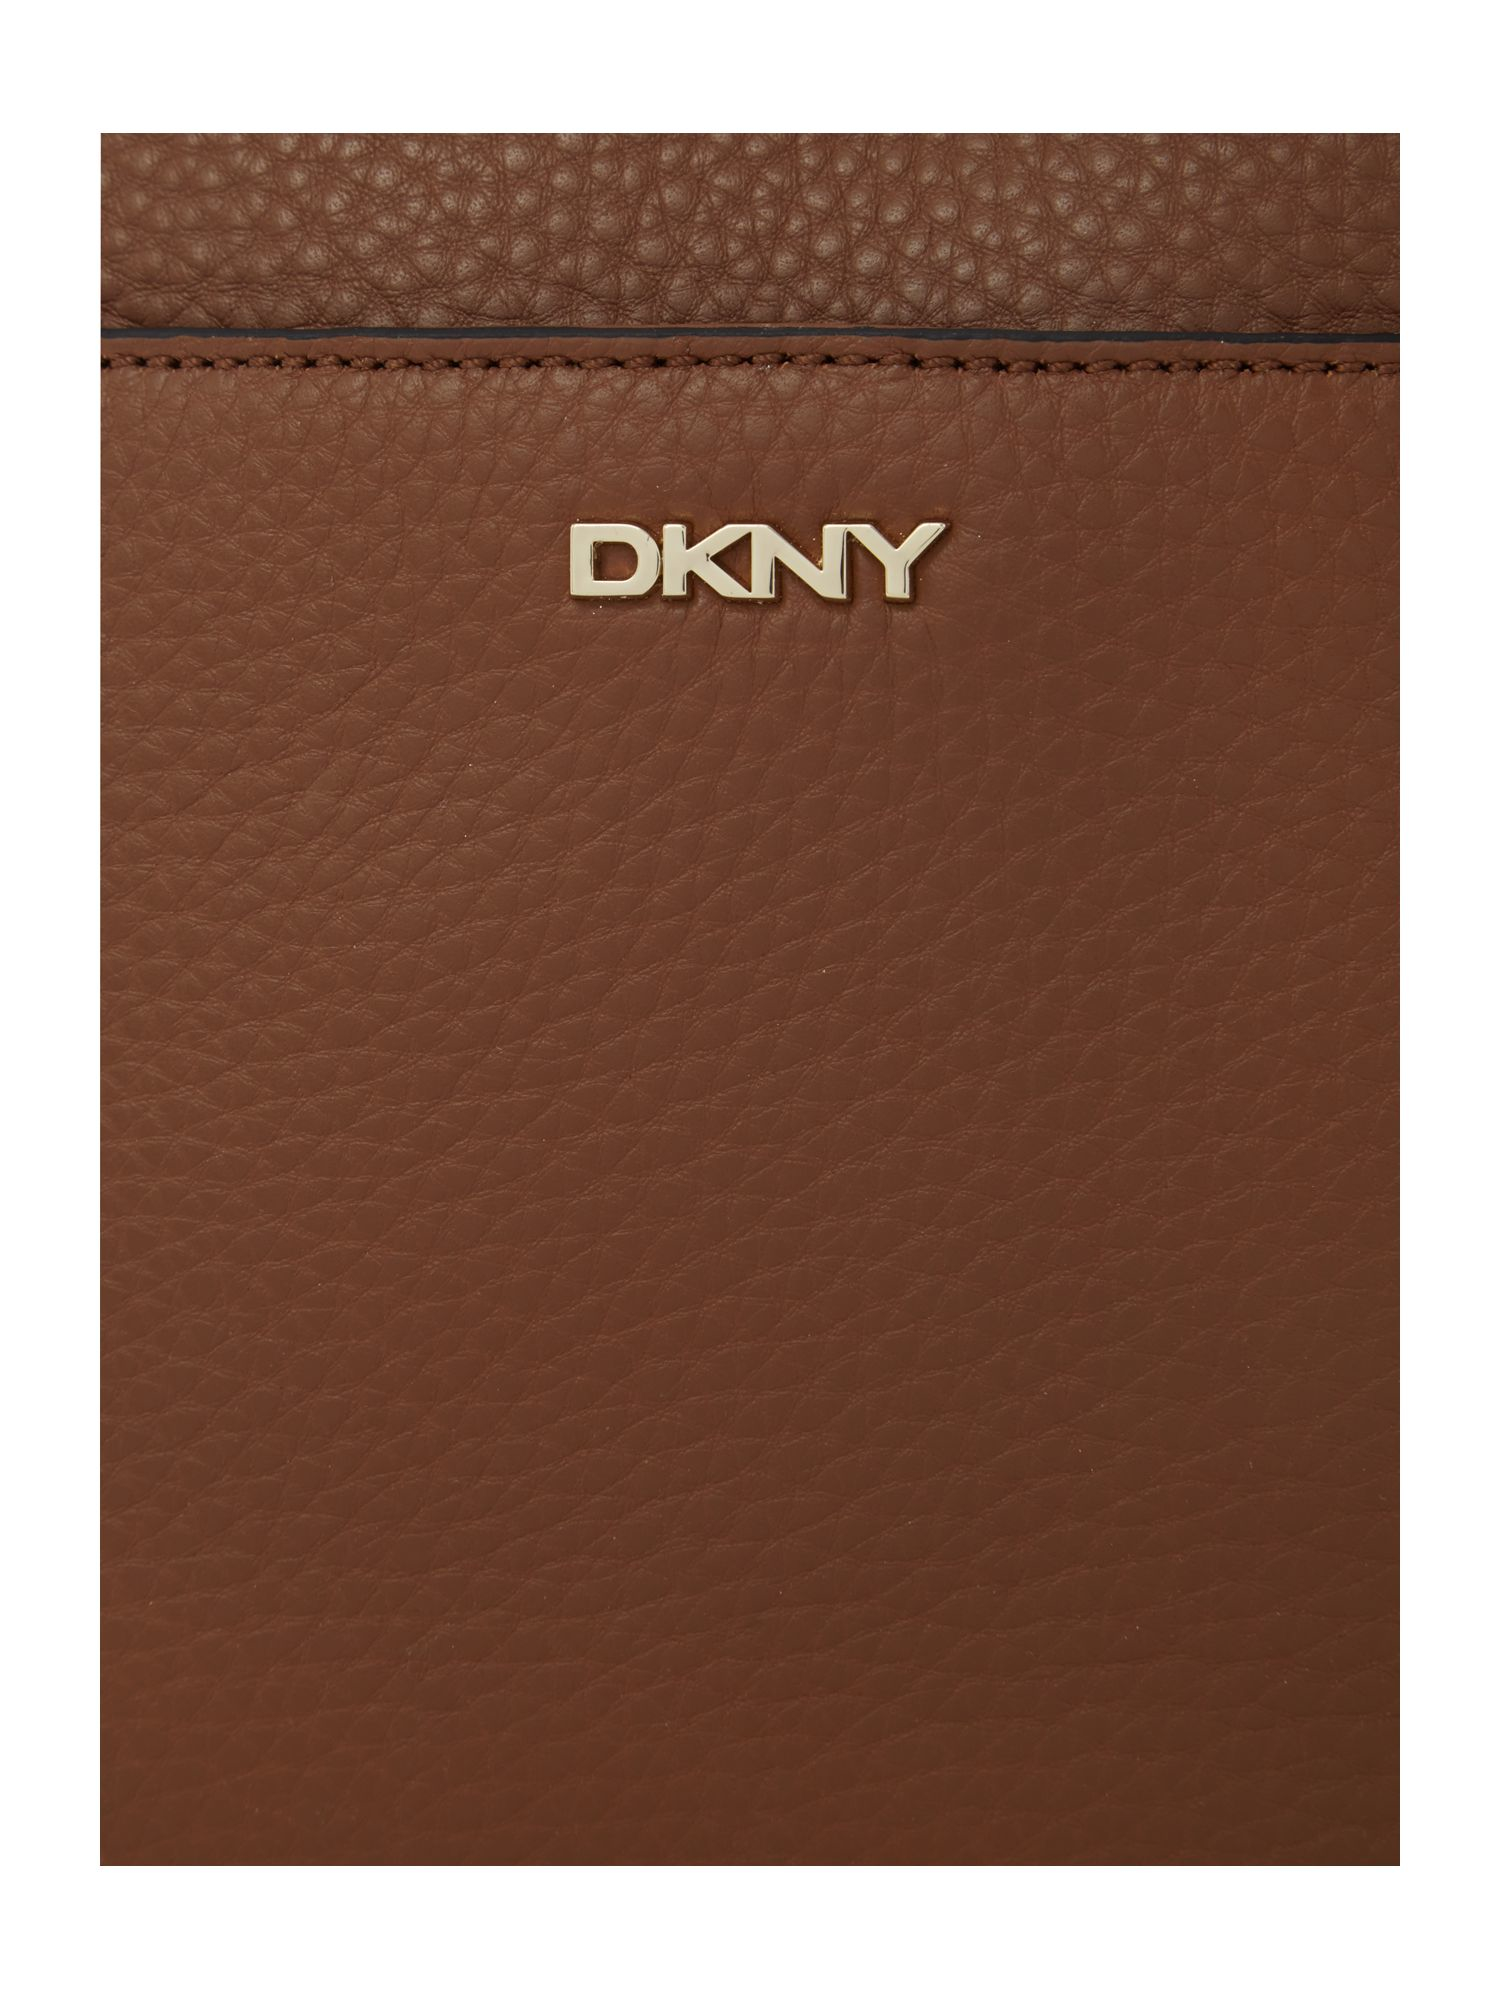 DKNY Tribeca Tan Double Zip Rounded Cross Body Bag in Brown